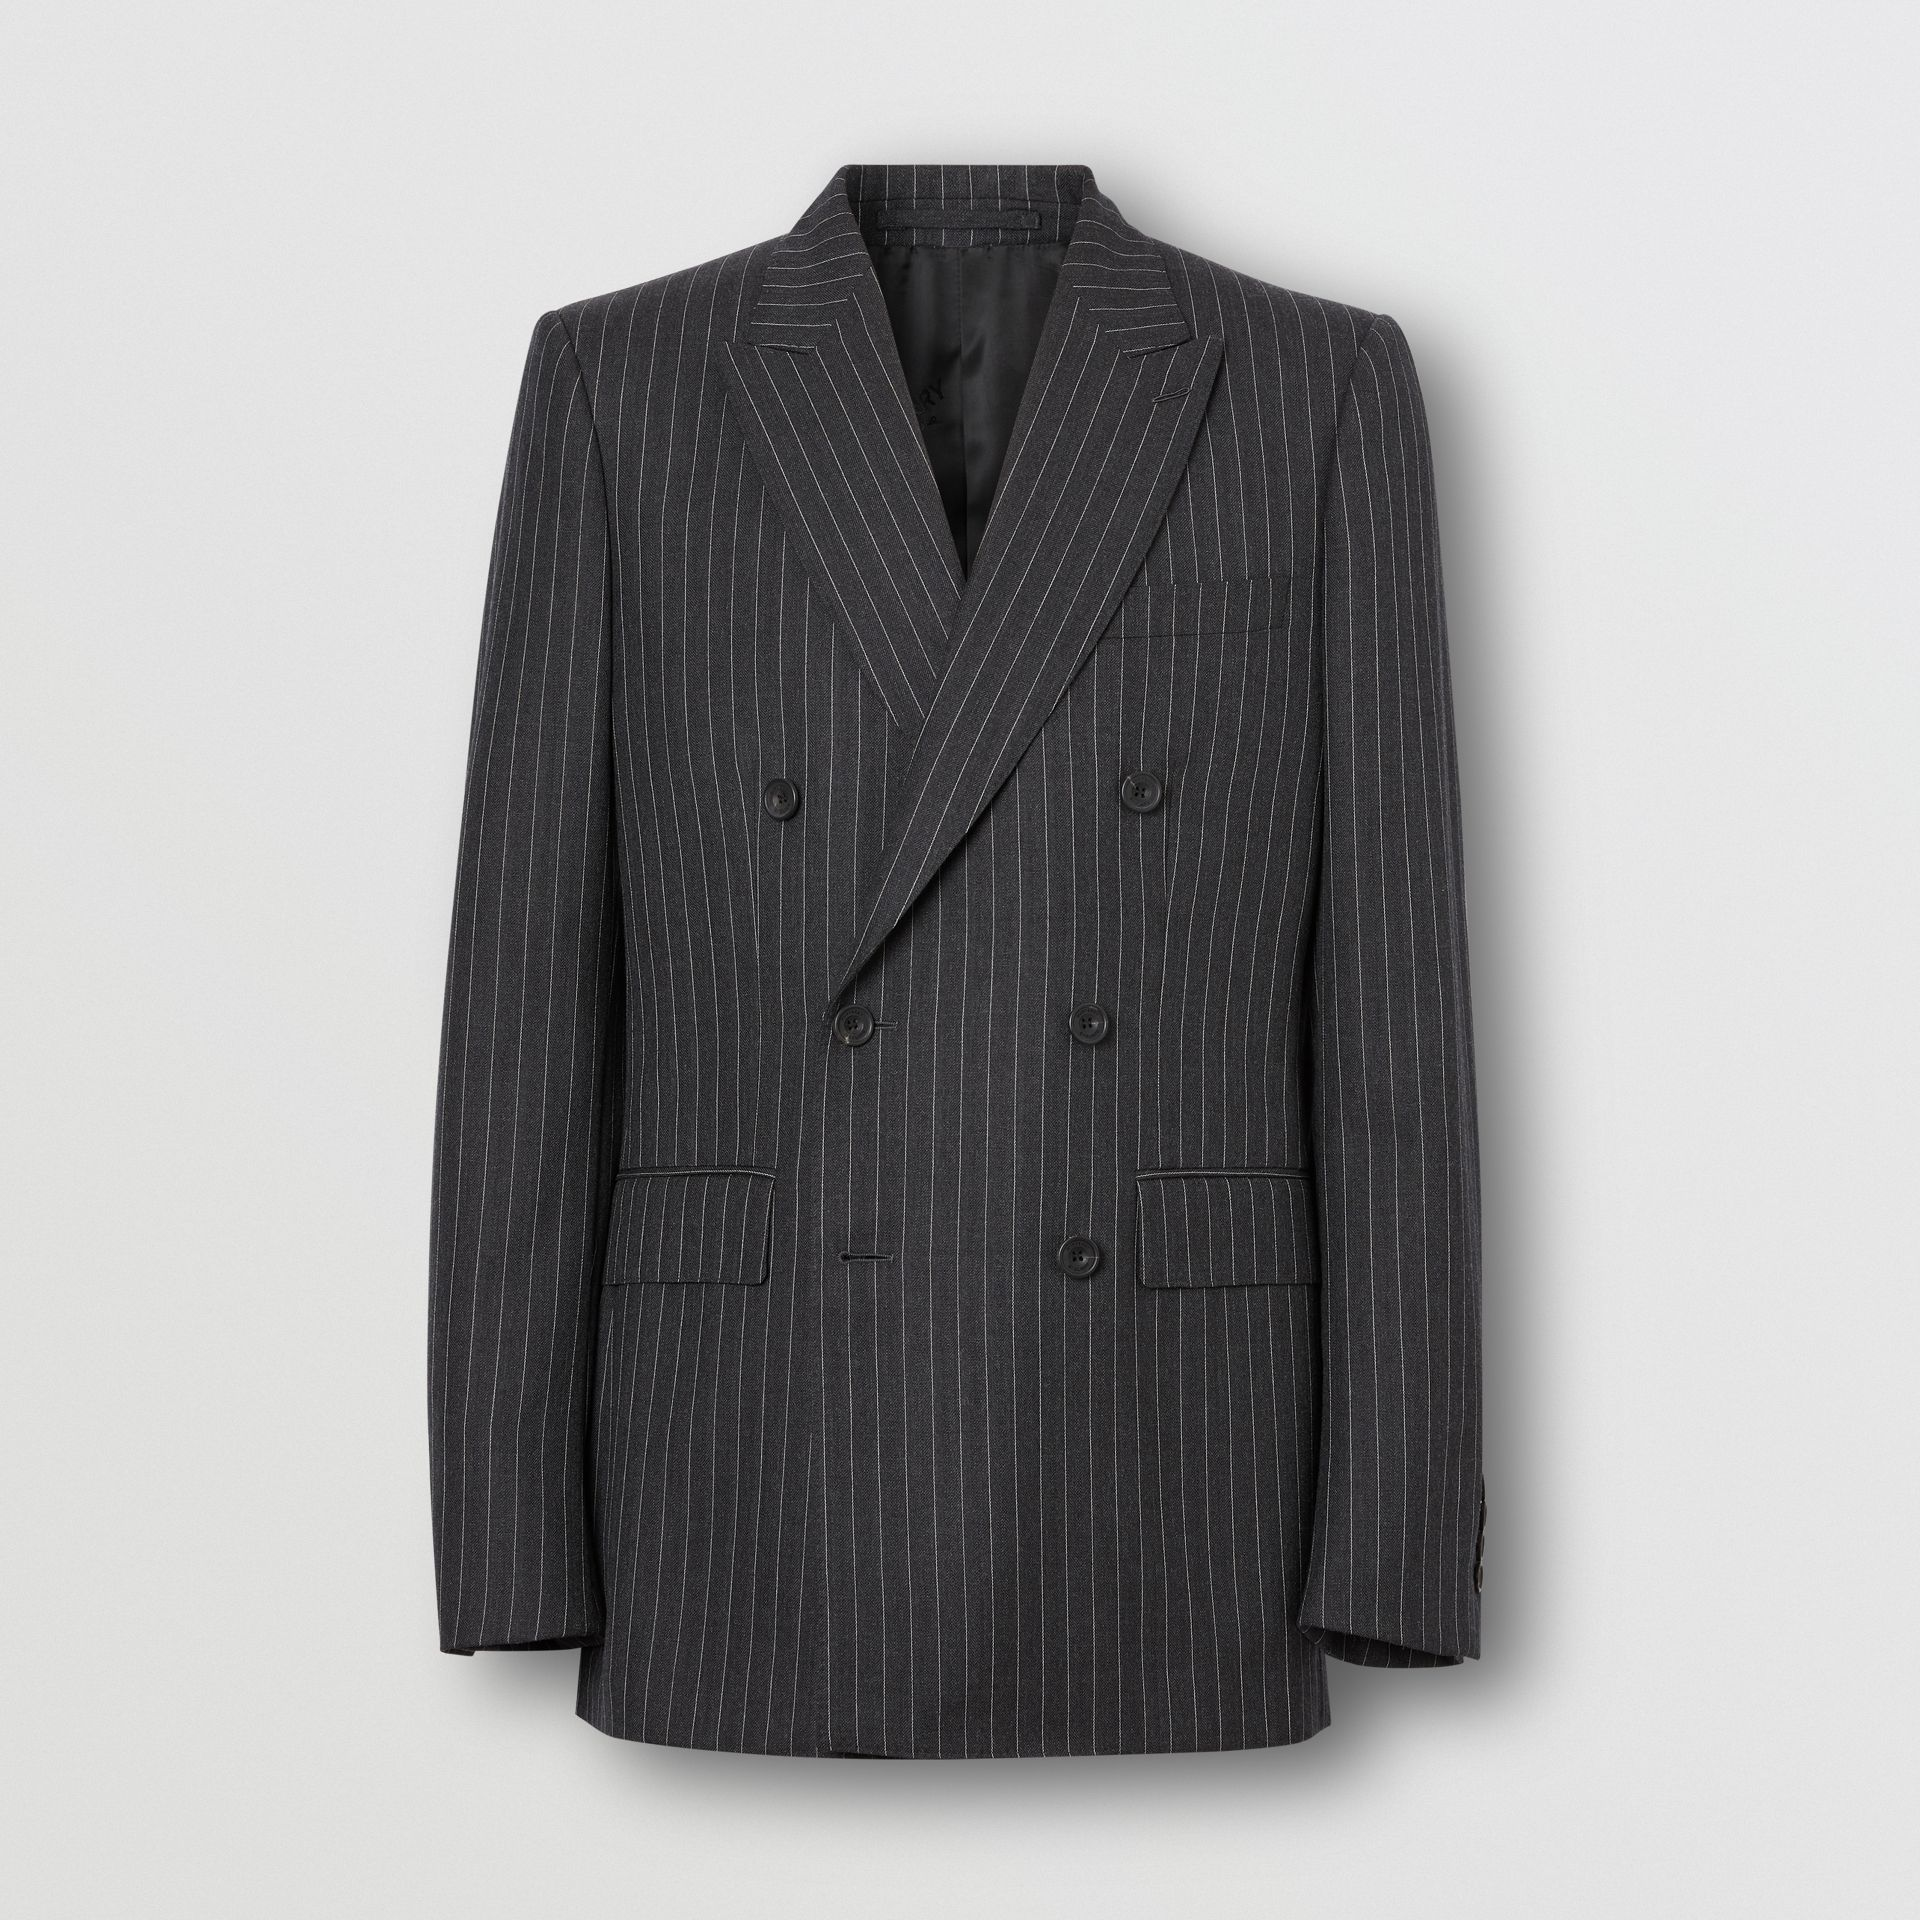 English Fit Pinstriped Wool Double-breasted Suit in Charcoal - Men | Burberry - gallery image 3